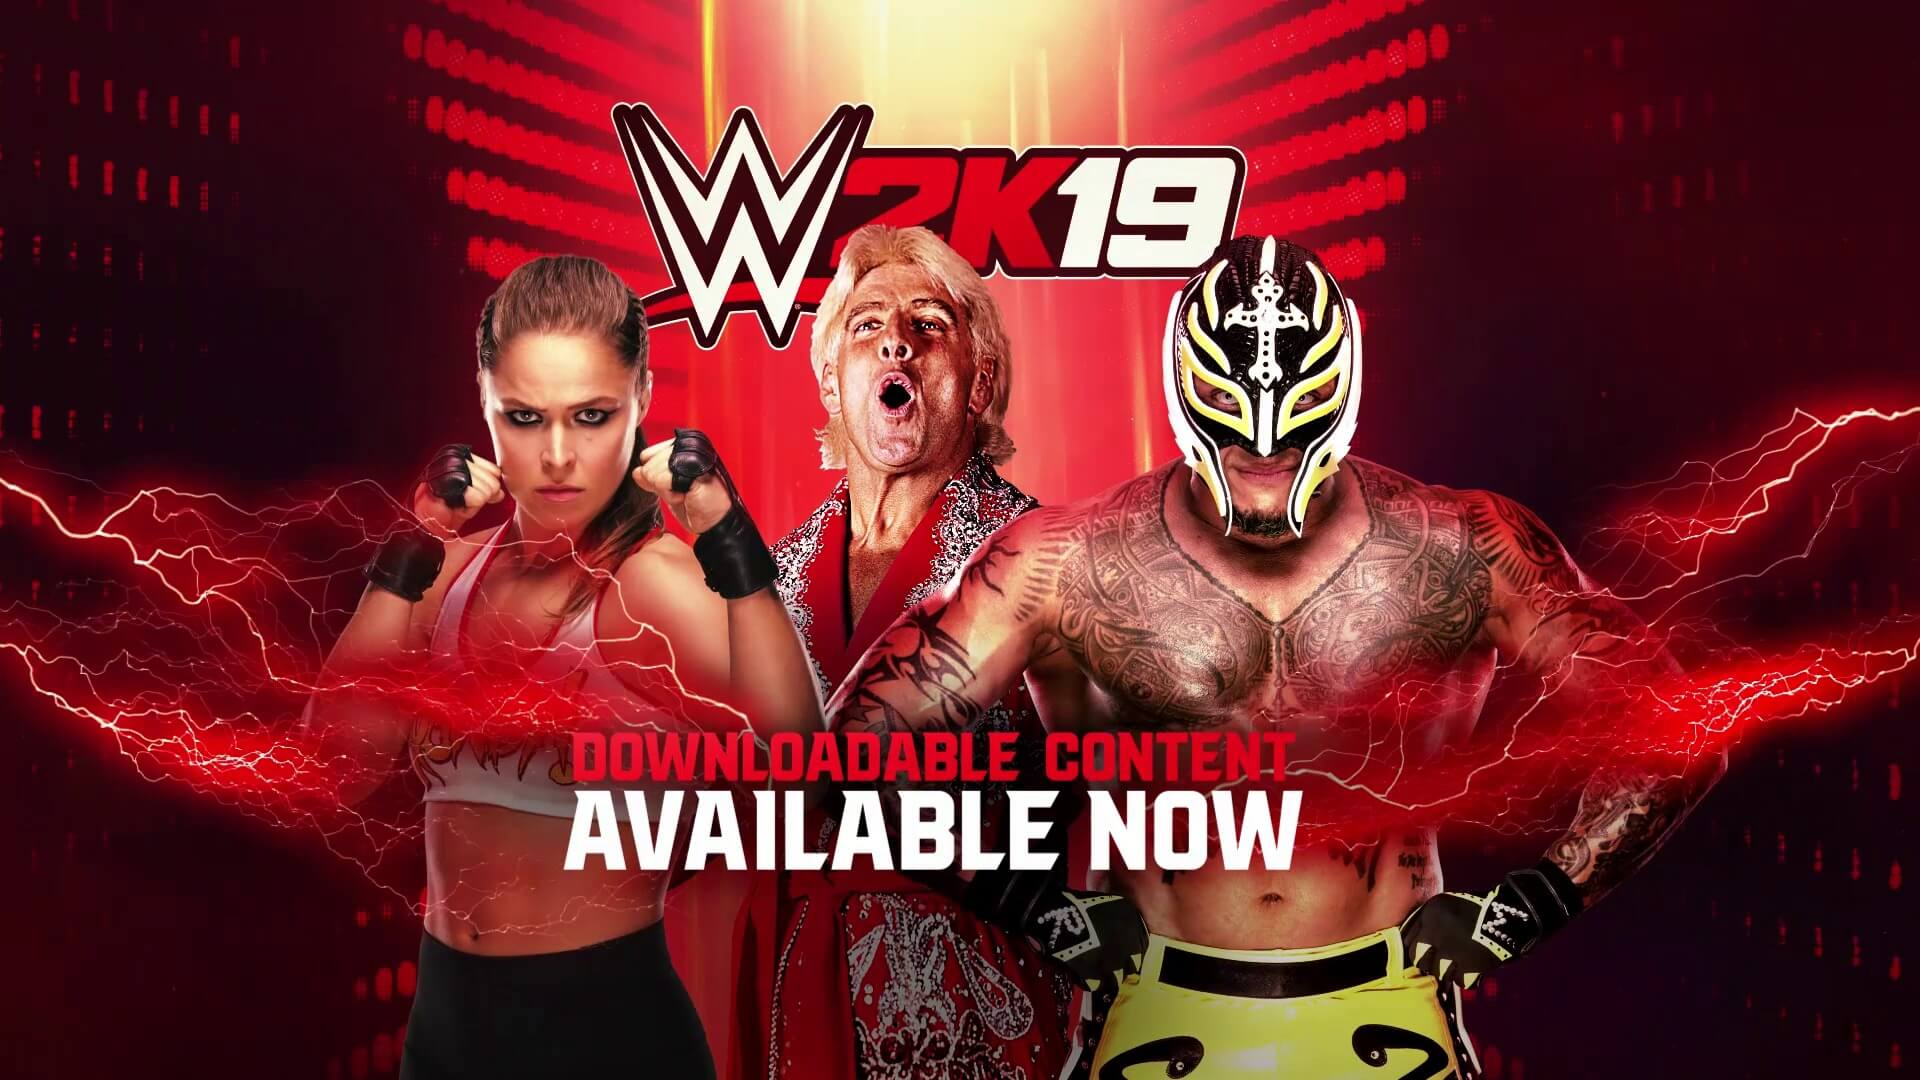 WWE 2K19: Ronda Rousey, Rey Mysterio, and Ric Flair DLC Now Available! (with Trailer)